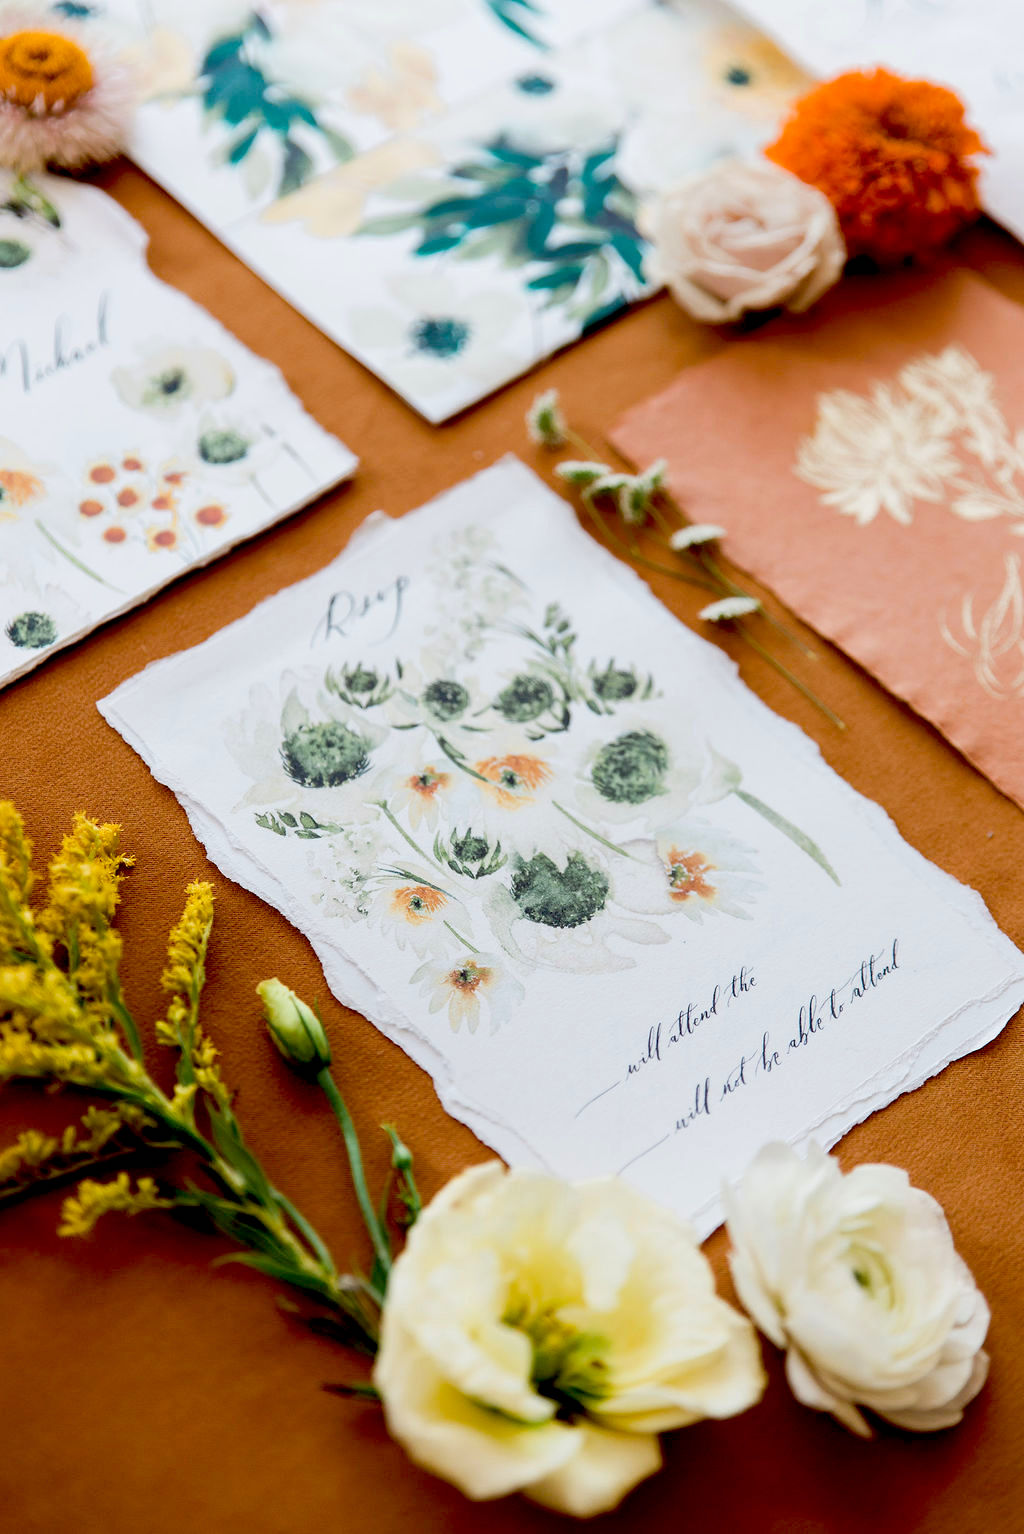 Rsvp card with delicate floral watercolour designs and hand torn edges